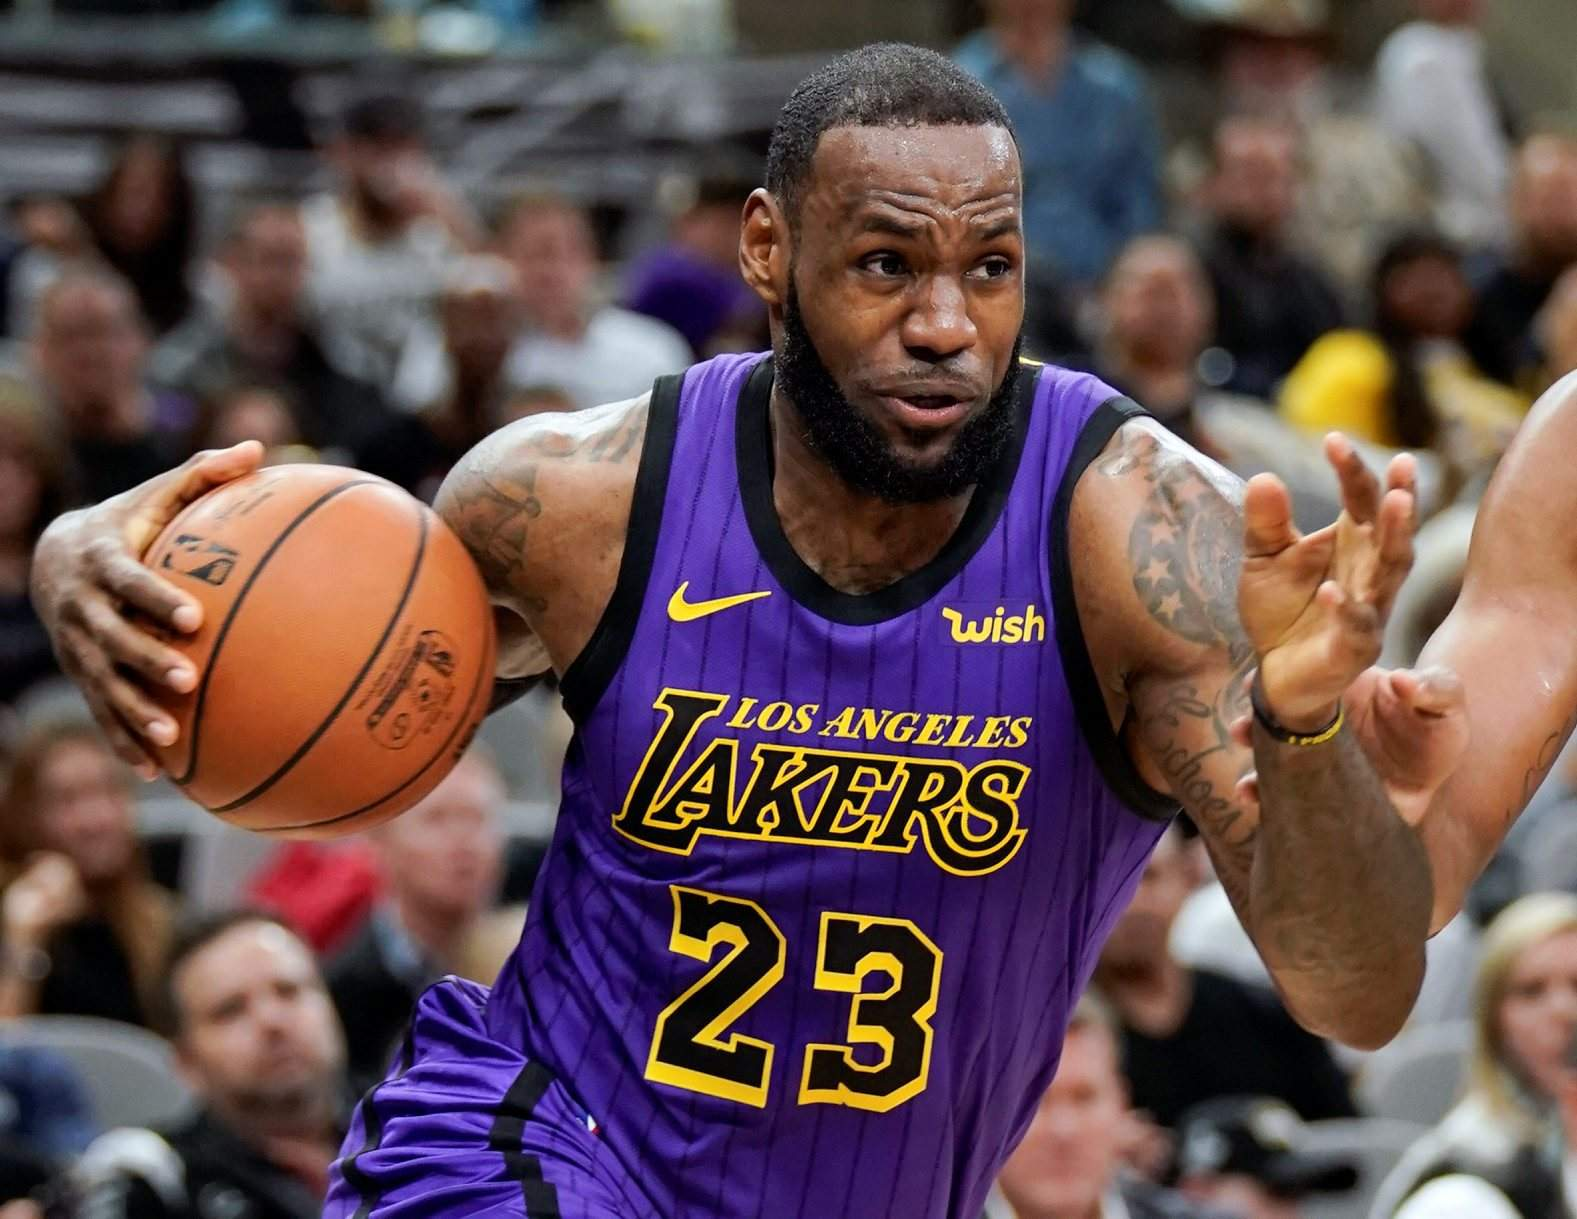 9c09986caa3 Los Angeles Lakers  LeBron James was named The Associated Press Male Athlete  of the Year on Thursday. His big year saw him reach another NBA Finals